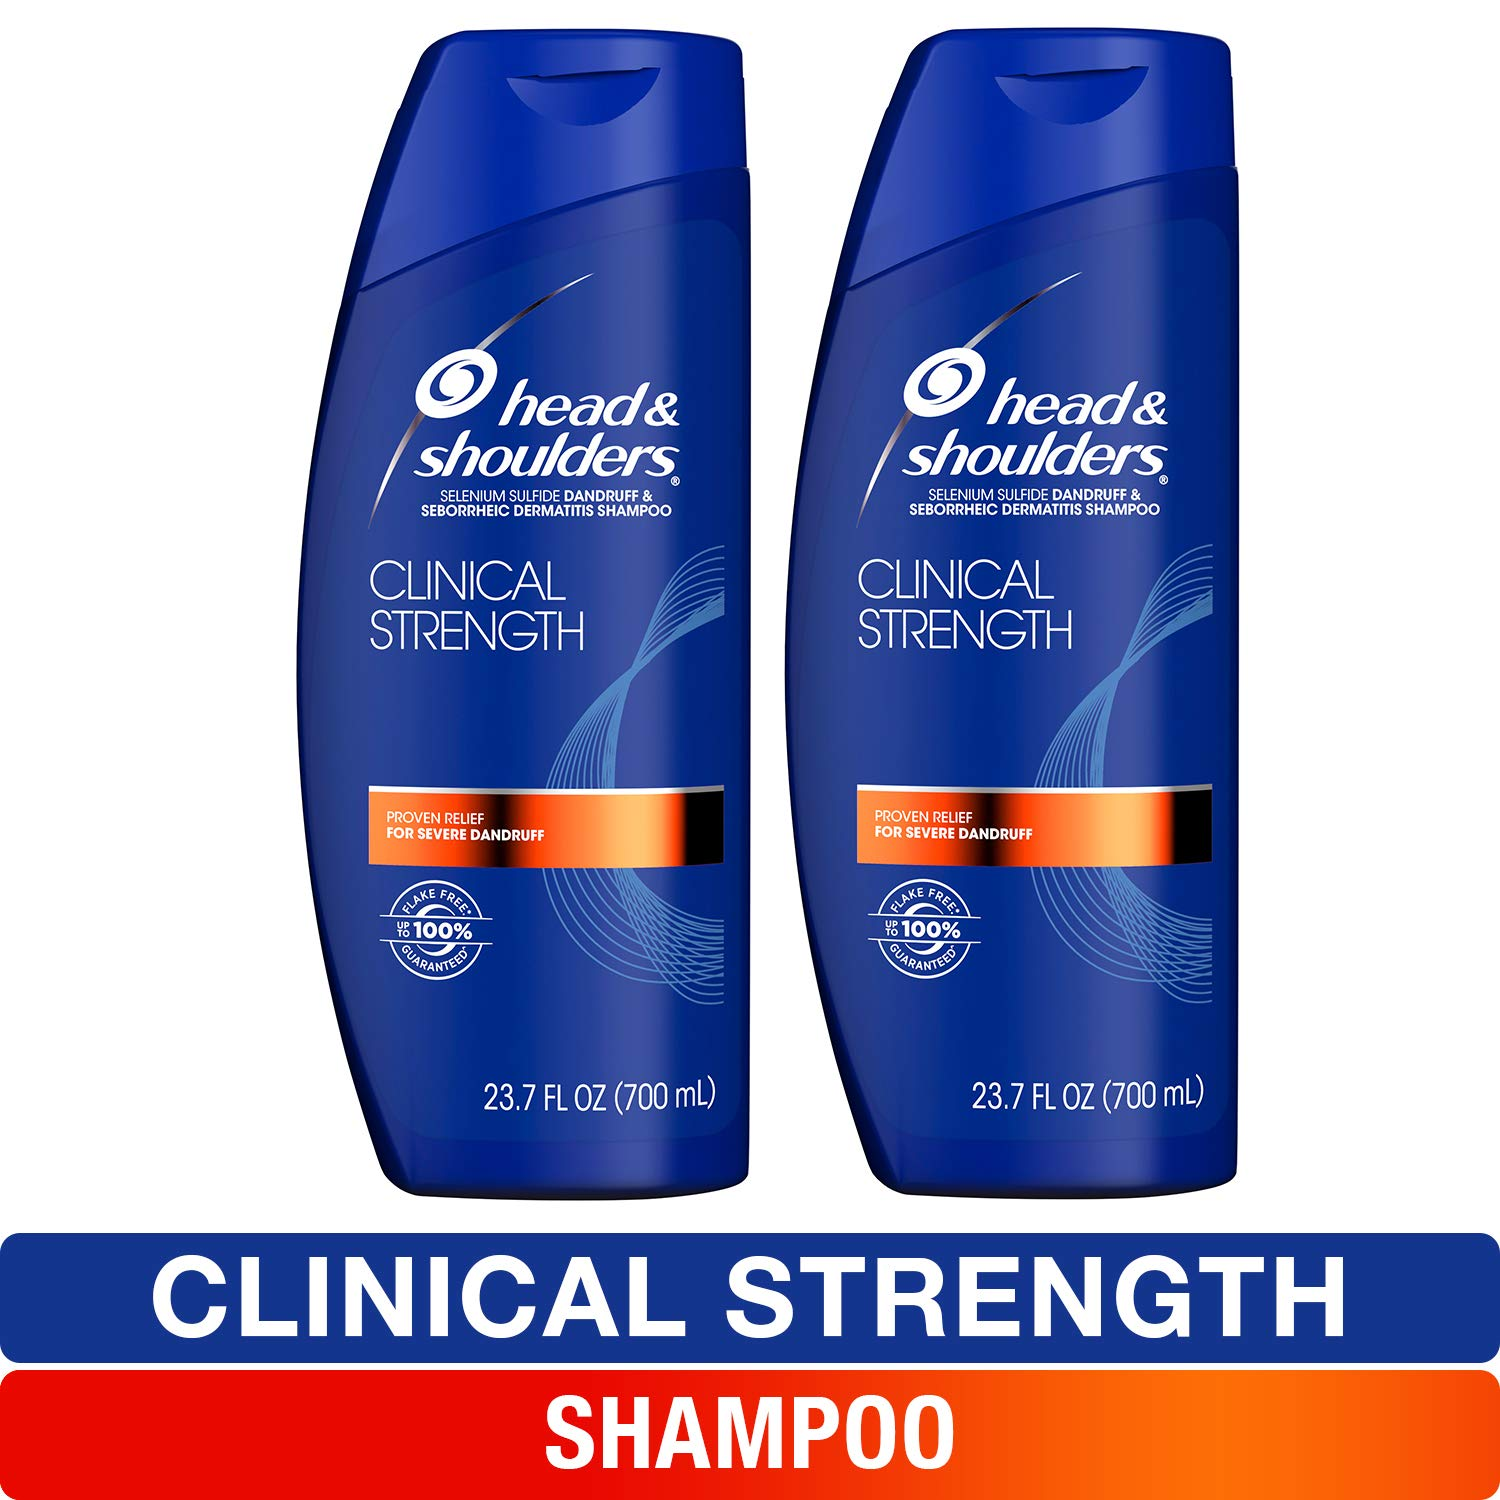 Head and Shoulders Shampoo, Anti Dandruff and Scalp Care, Clinical Strength Seborrheic Dermatitis Treatment, 23.7 fl oz, Twin Pack by Head & Shoulders